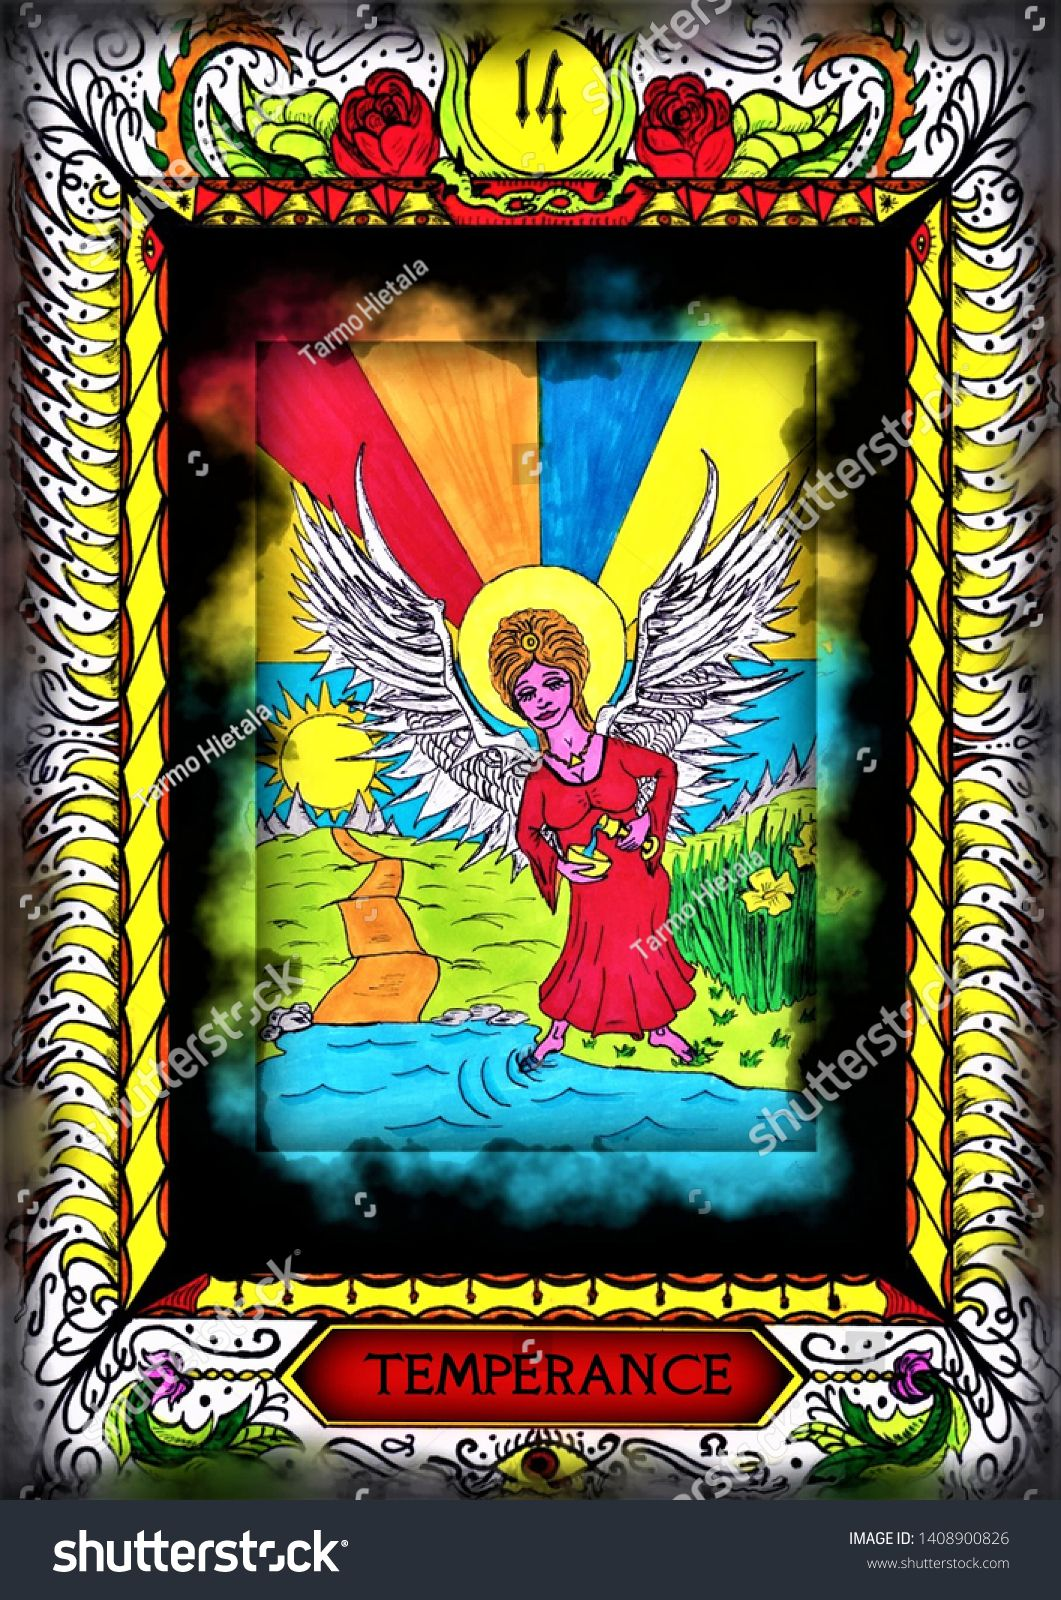 Customized tarot card temperance hand drawn all of the